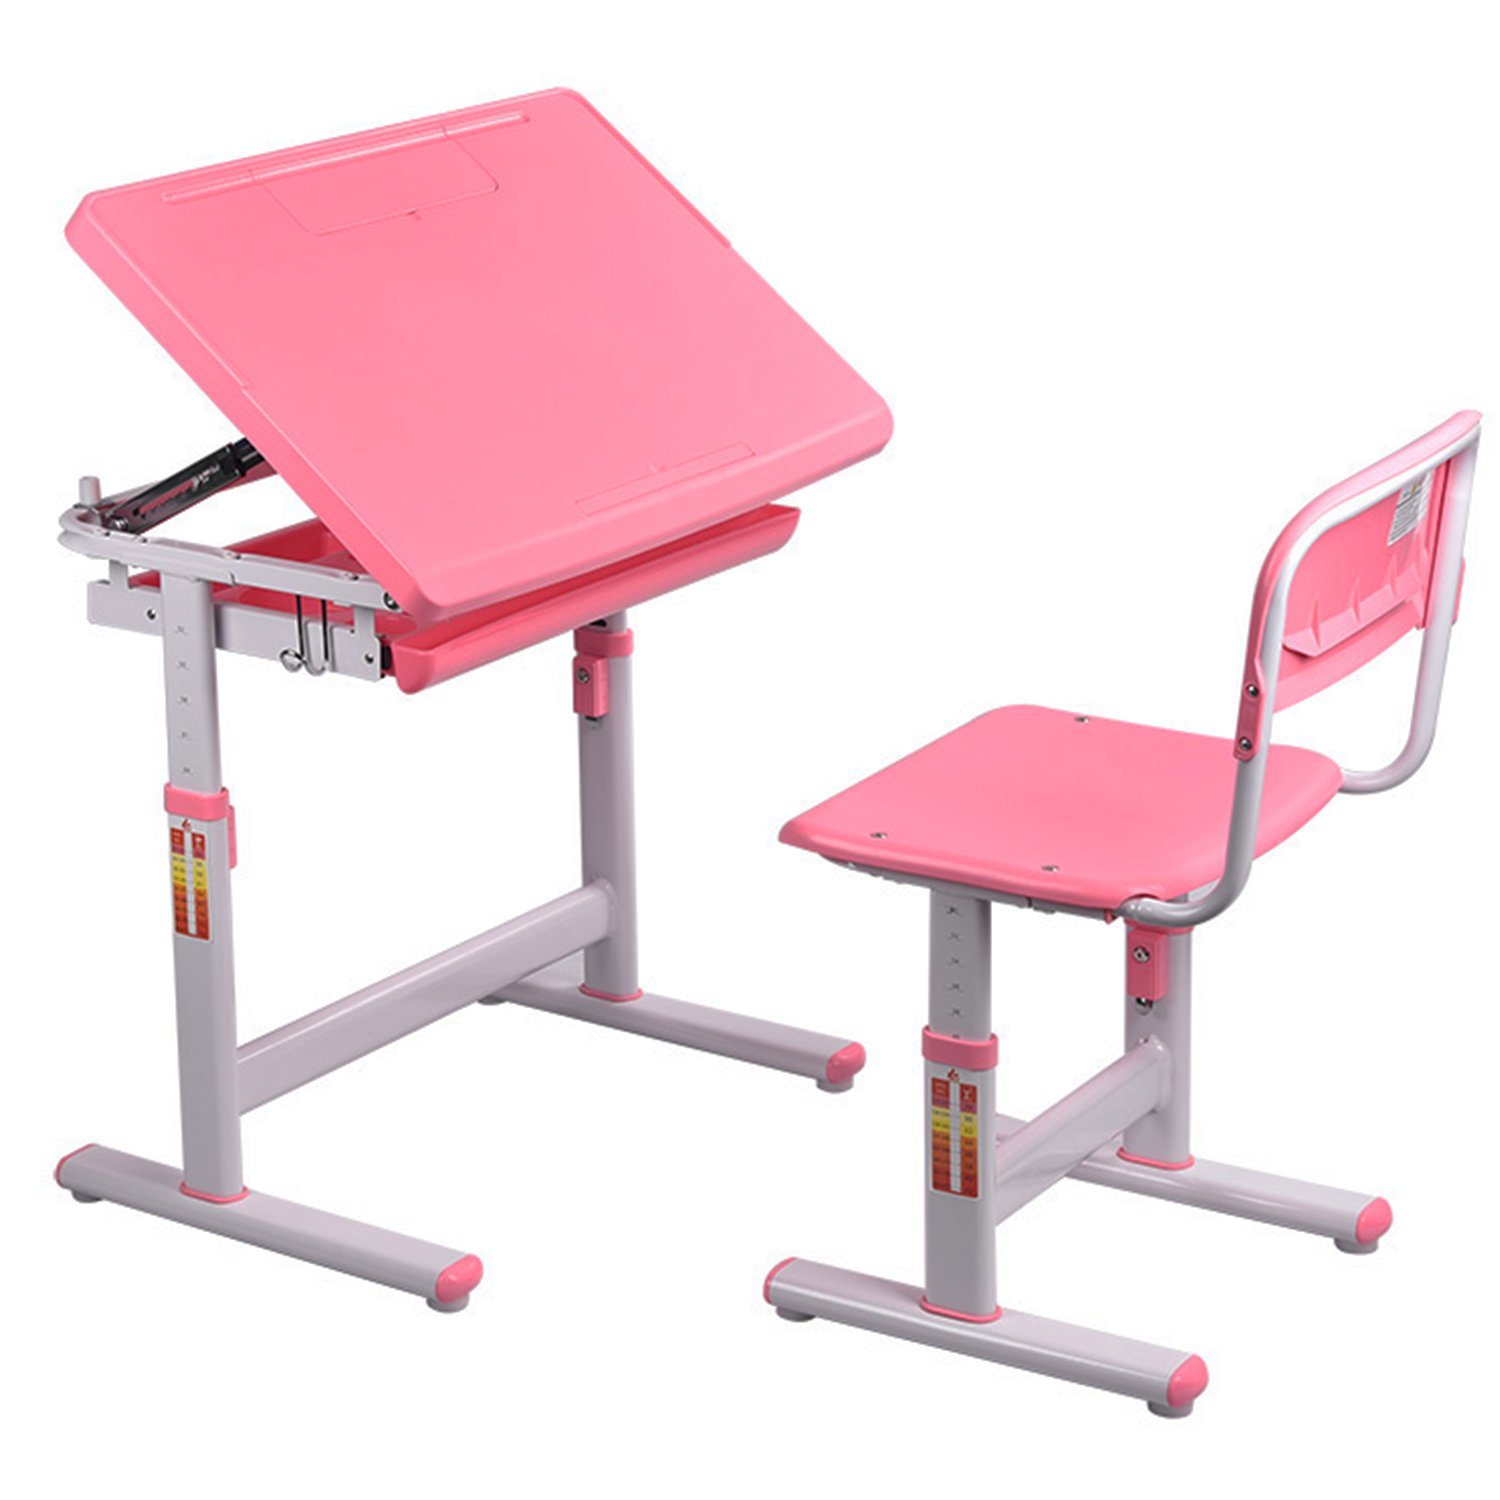 Kids\' Desks & Desk Sets | Amazon.com